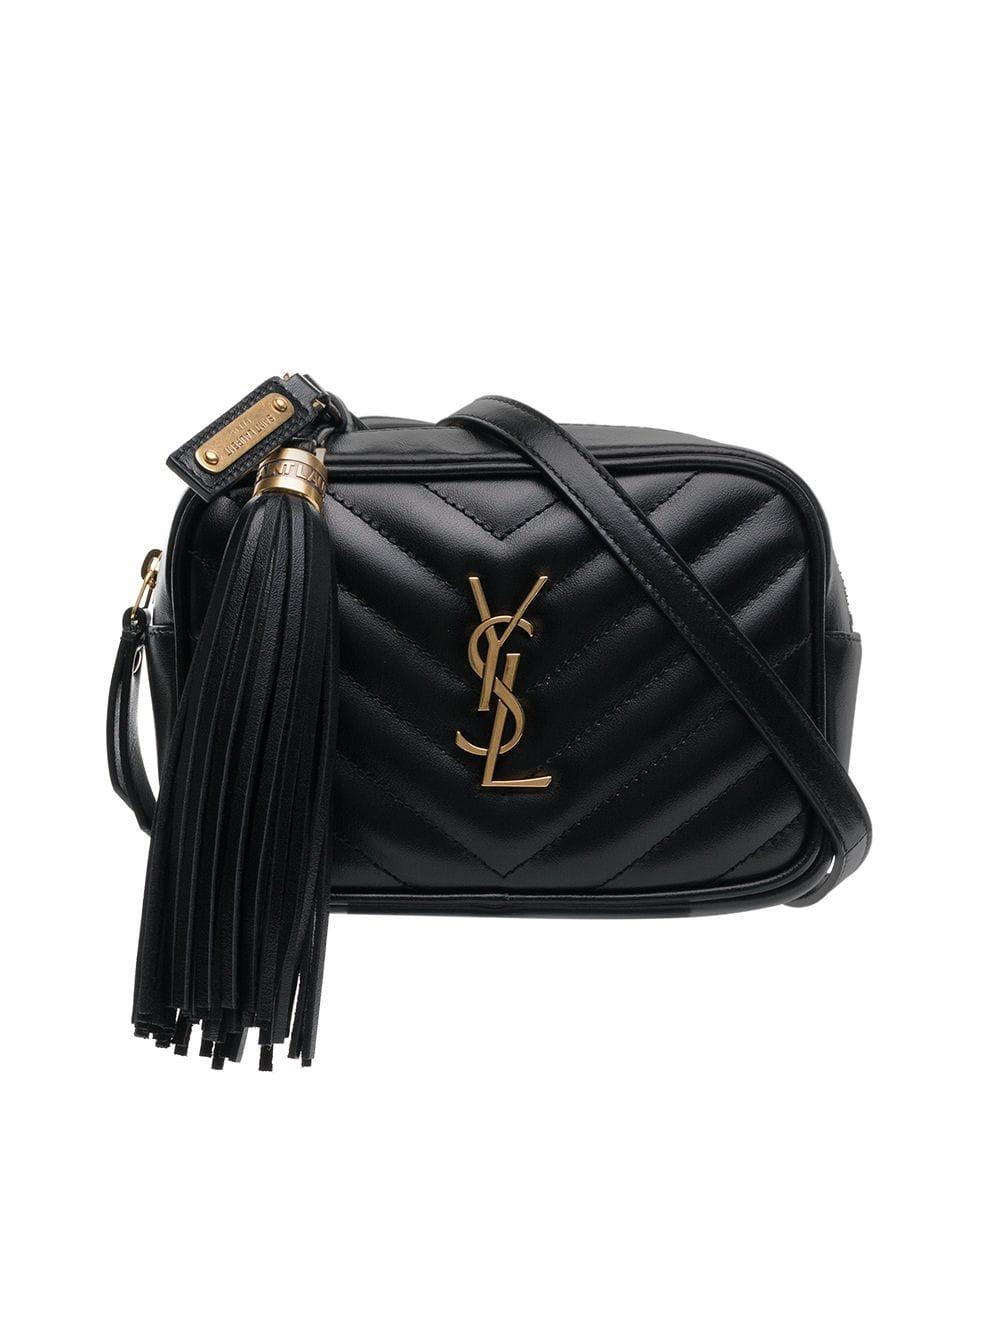 Lyst - Saint Laurent Monogram Lou Leather Belt Bag in Black 1c3c289f9cde1